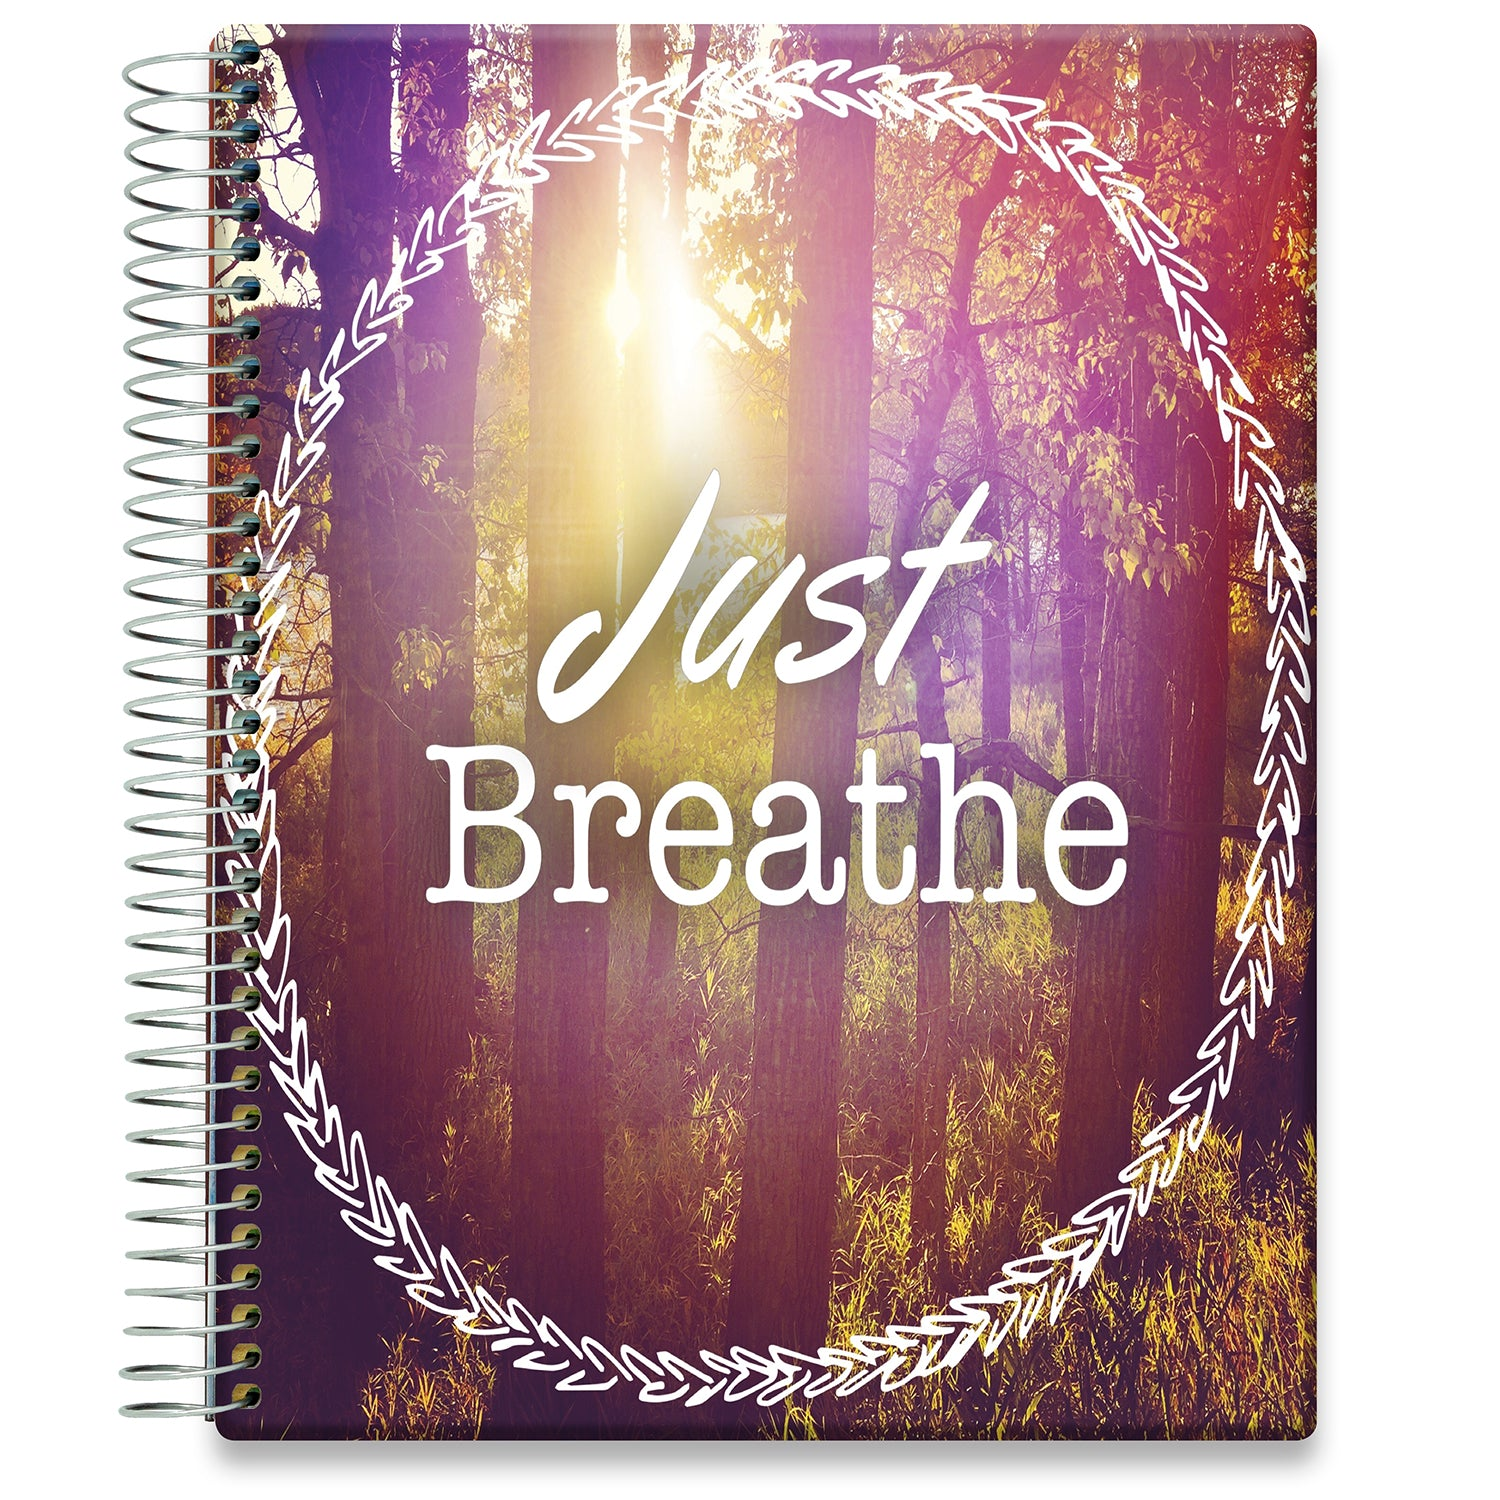 Planner 2021-2022 • April 2021 to June 2022 Academic Year • 8.5x11 Hardcover • Just Breathe